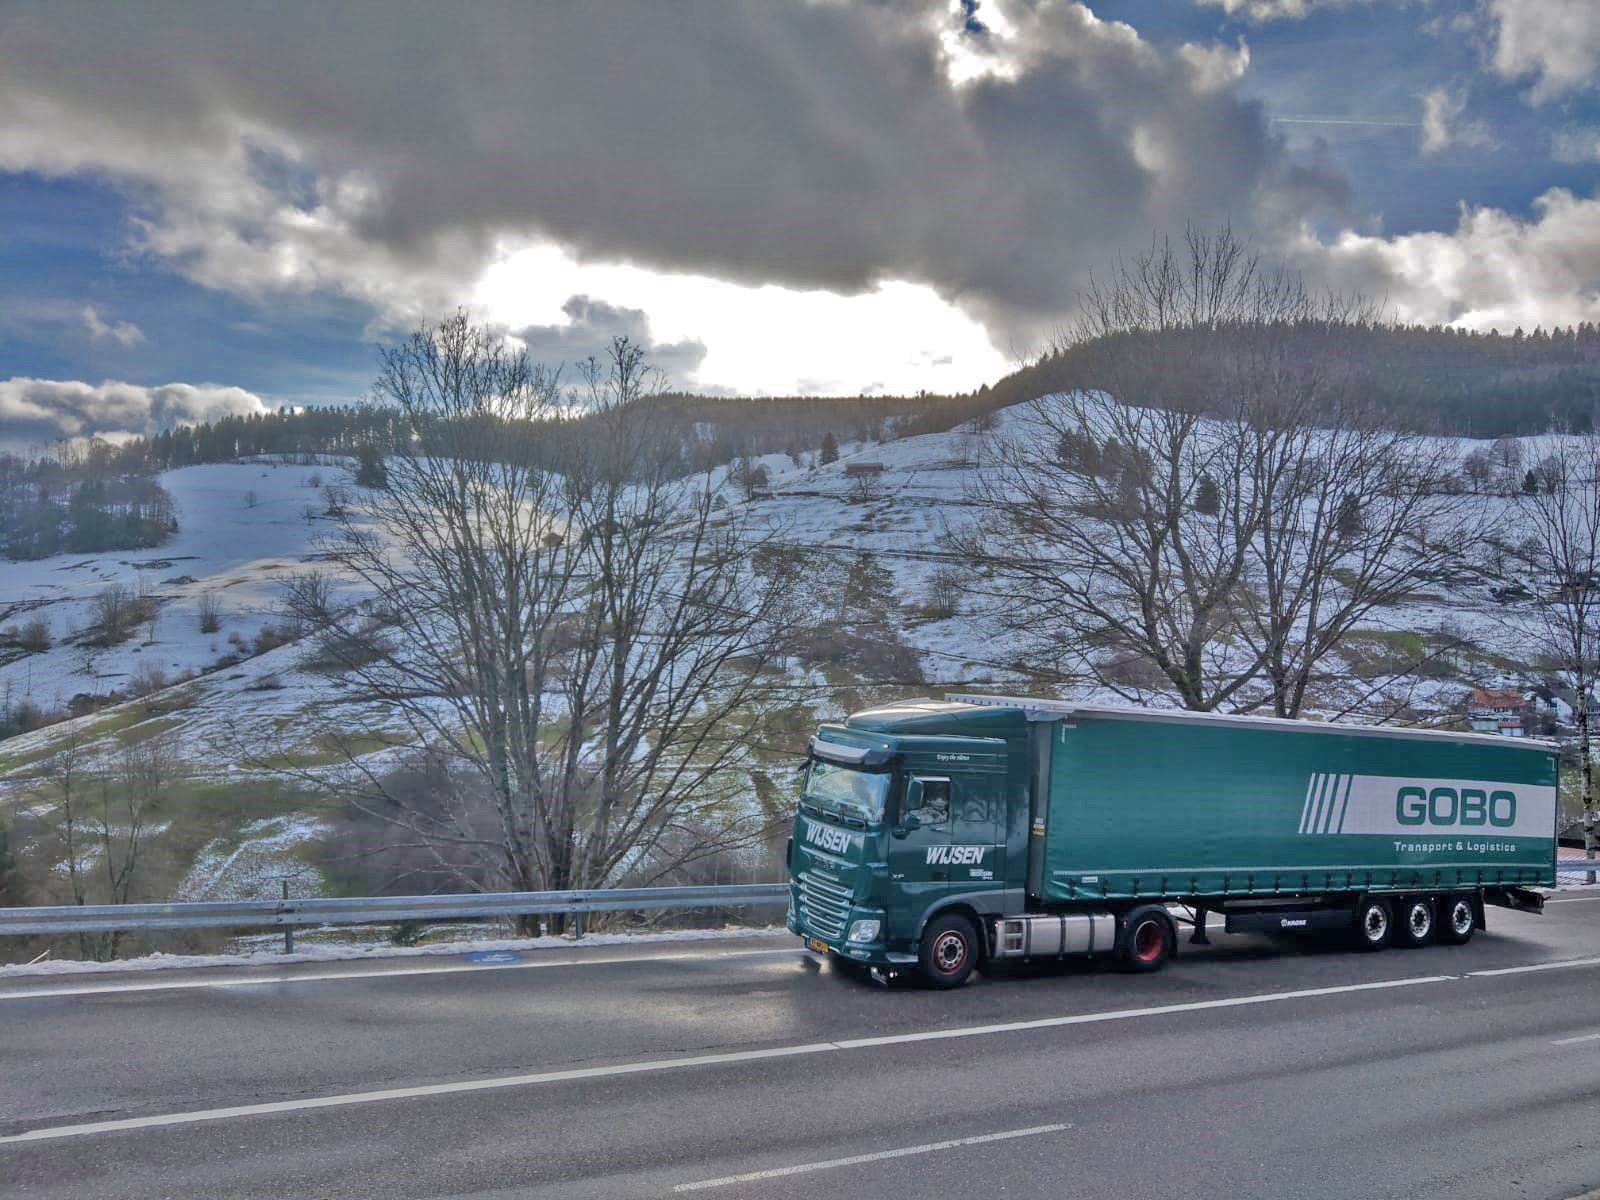 Loaded-in-Todtnau--Time-for-weekend-14-2-2020-